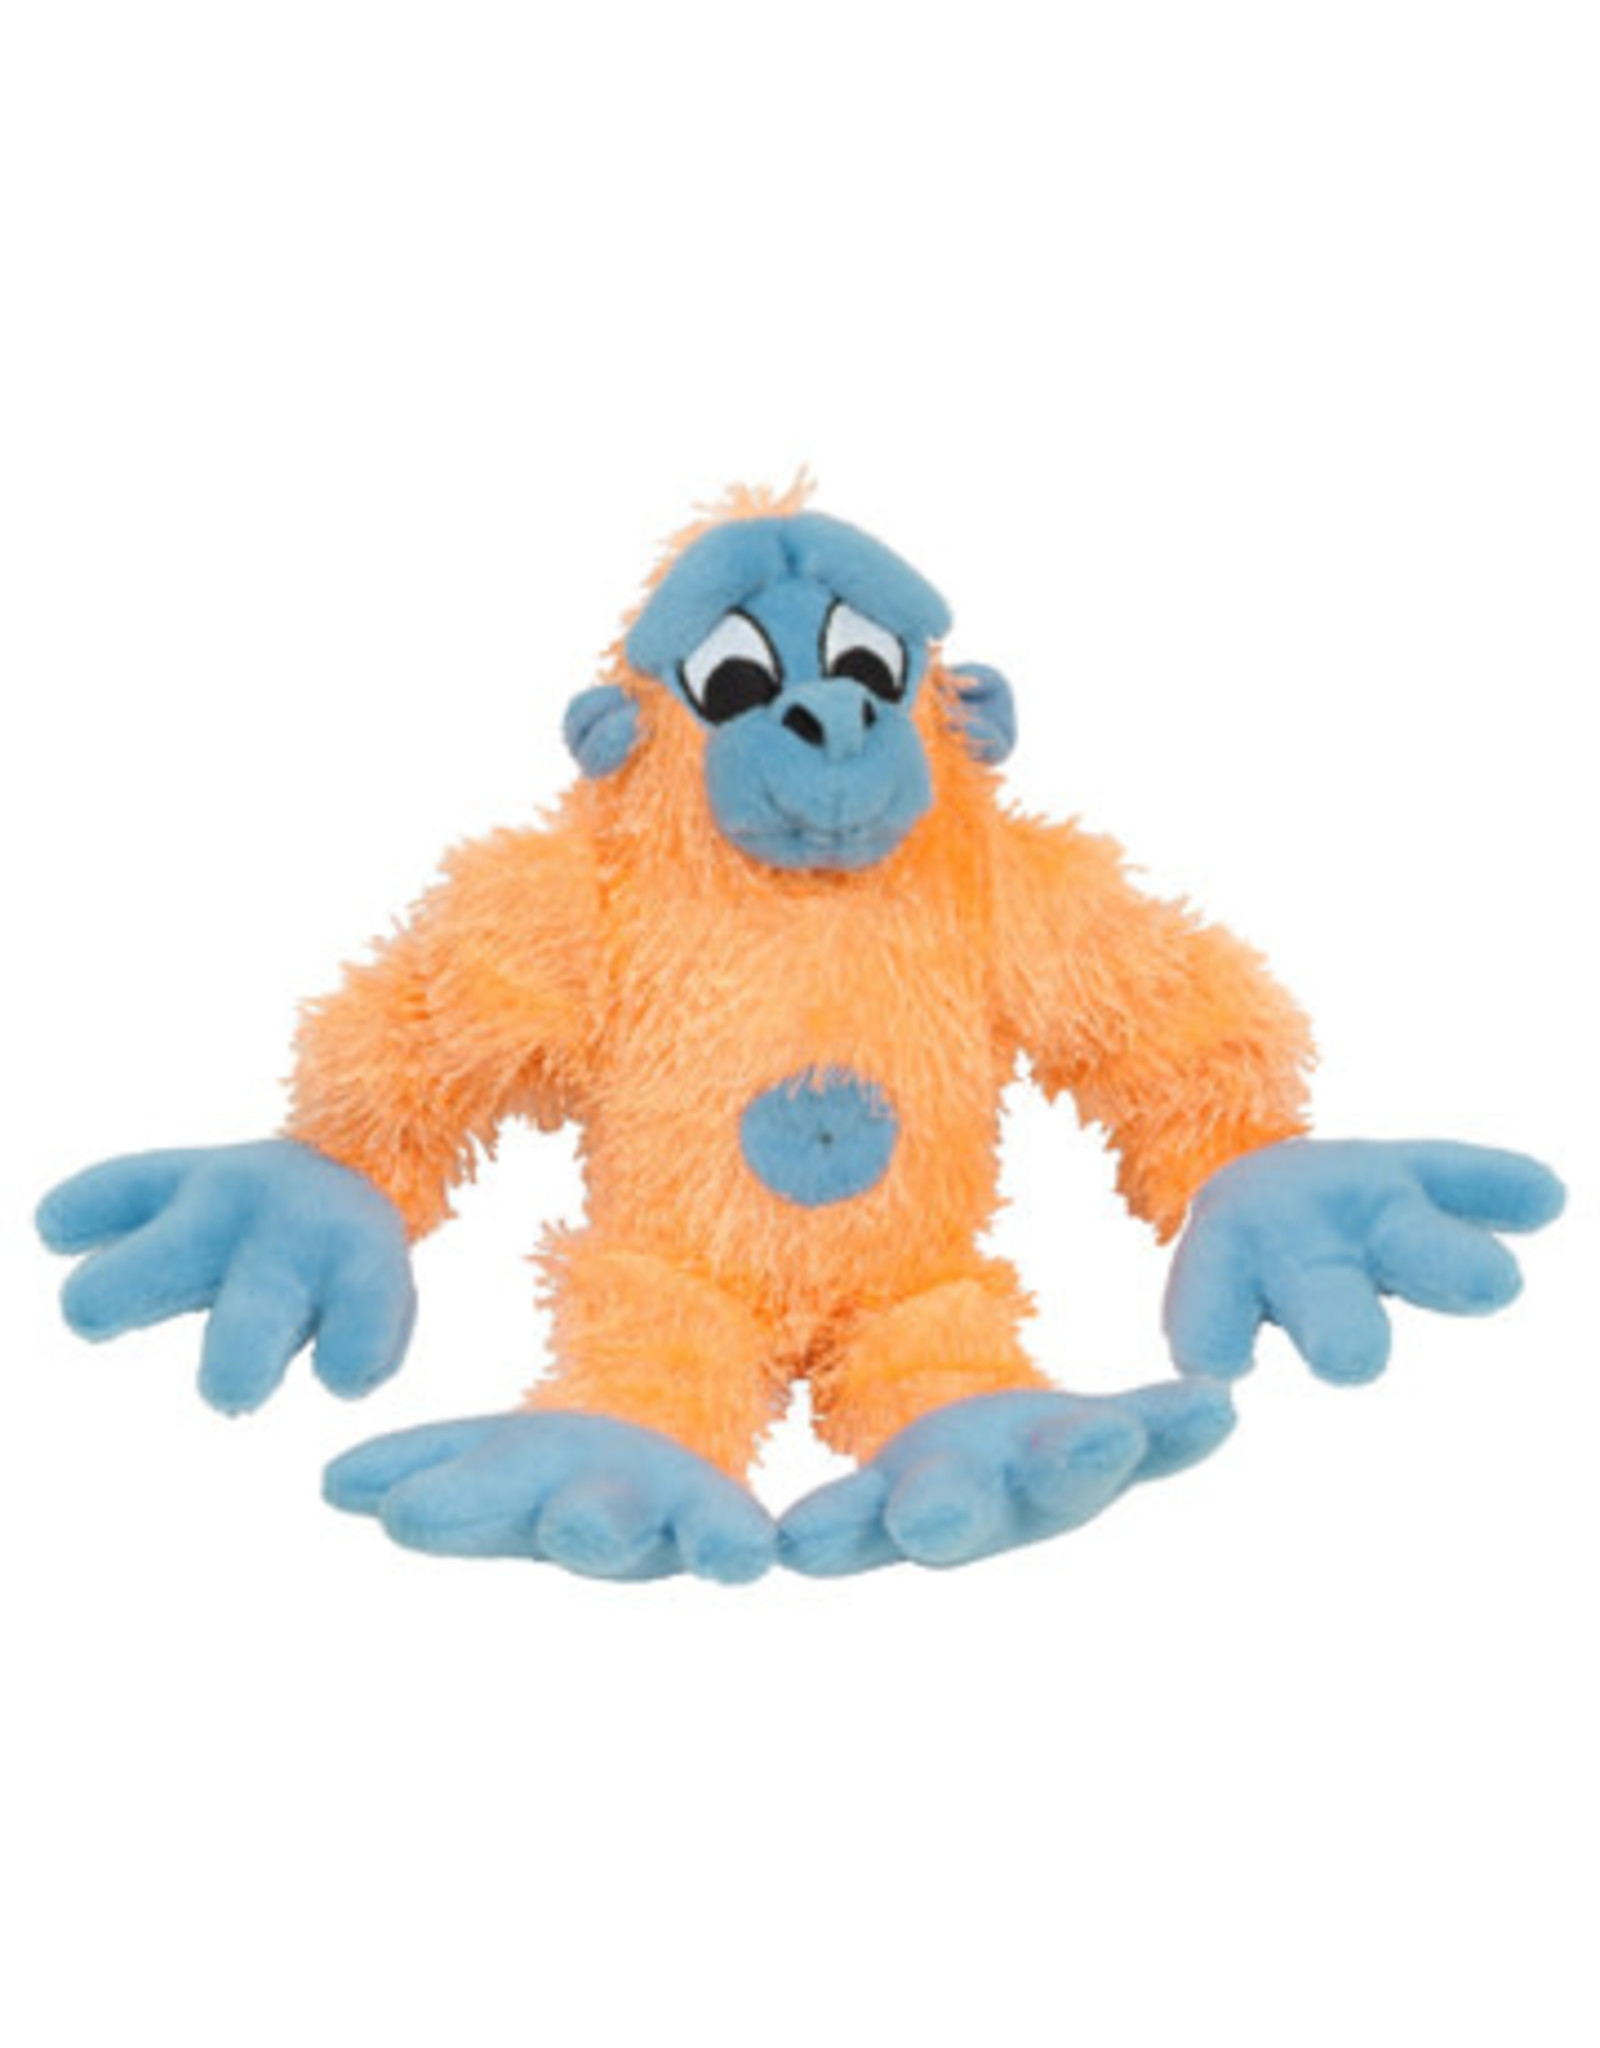 DogIt Orange Gorilla Plush Dog Toy with Squeaker